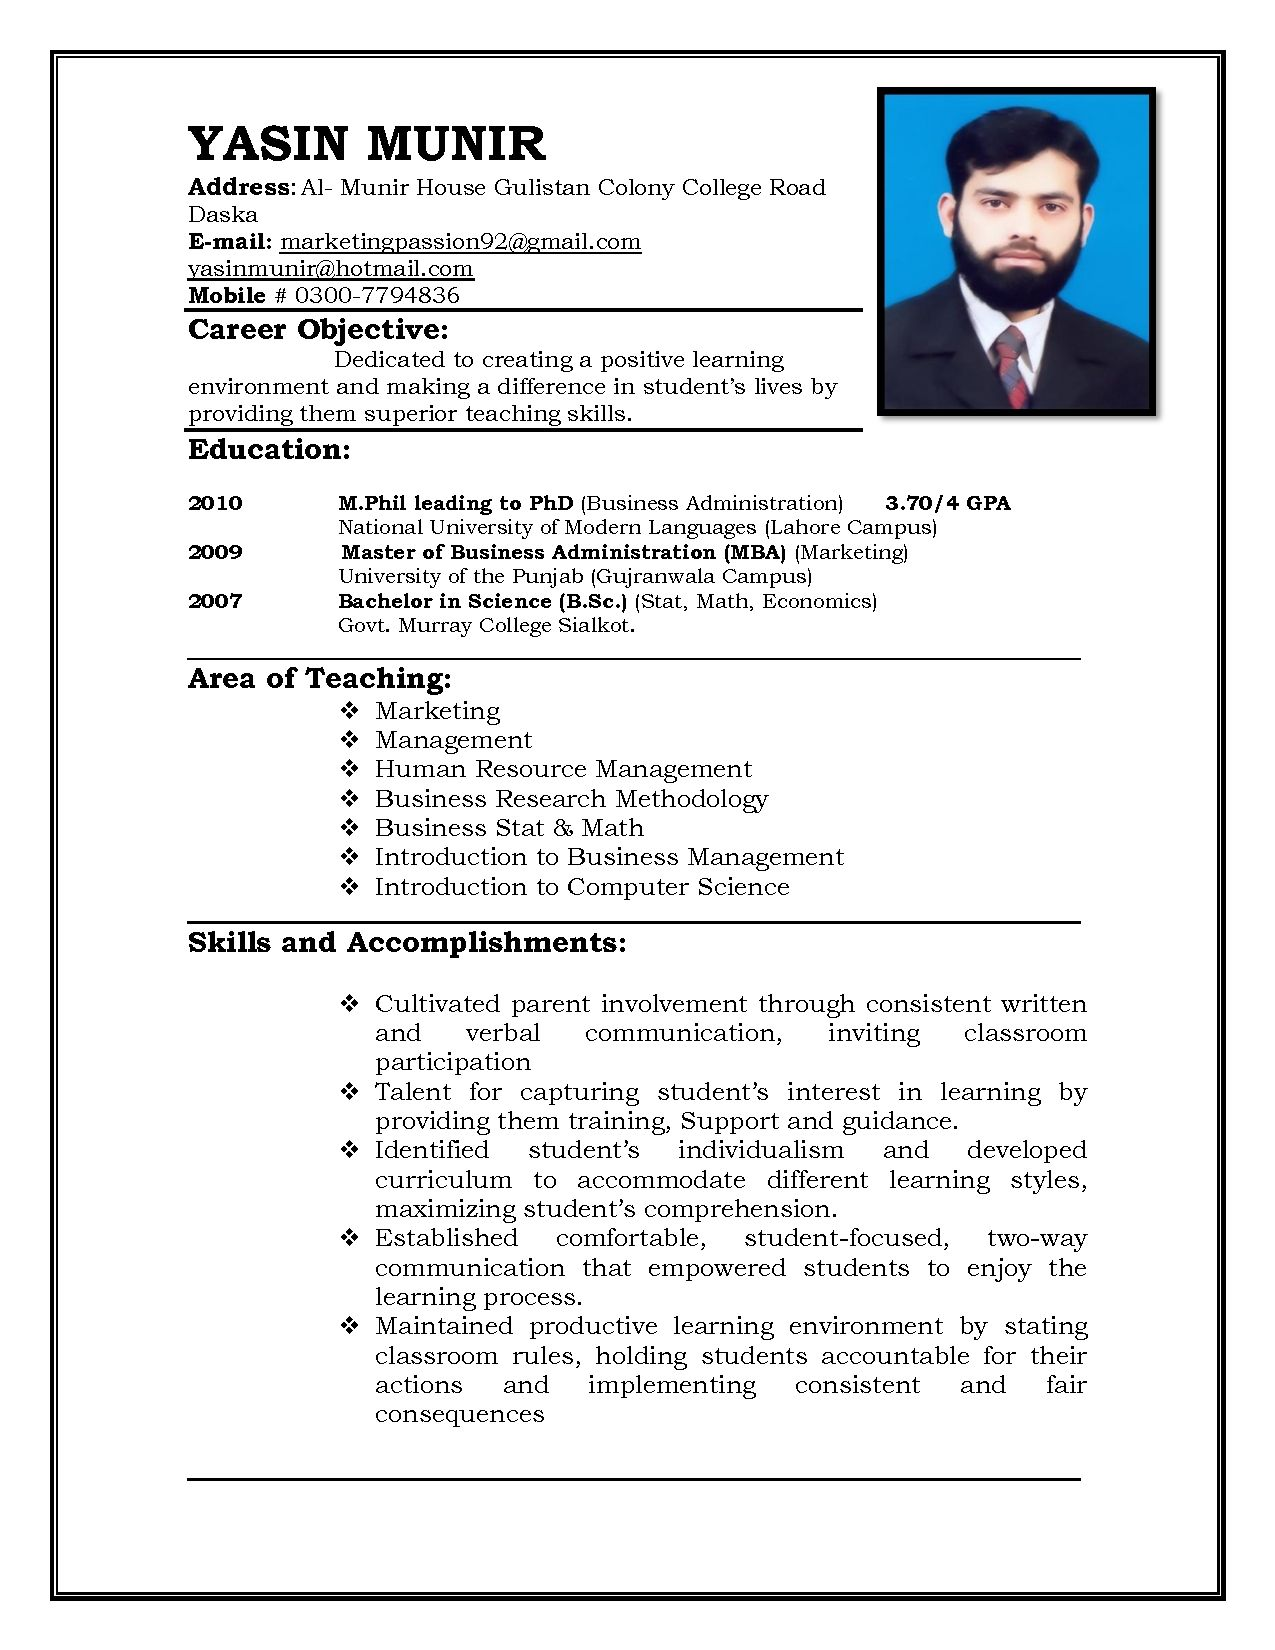 Teacher Job Resume Format Math Teacher Resume Sample Free For Teachers Temp  Mdxar Job, Resumes Samples For Teachers Pdf Resume Format Resume Template,  ...